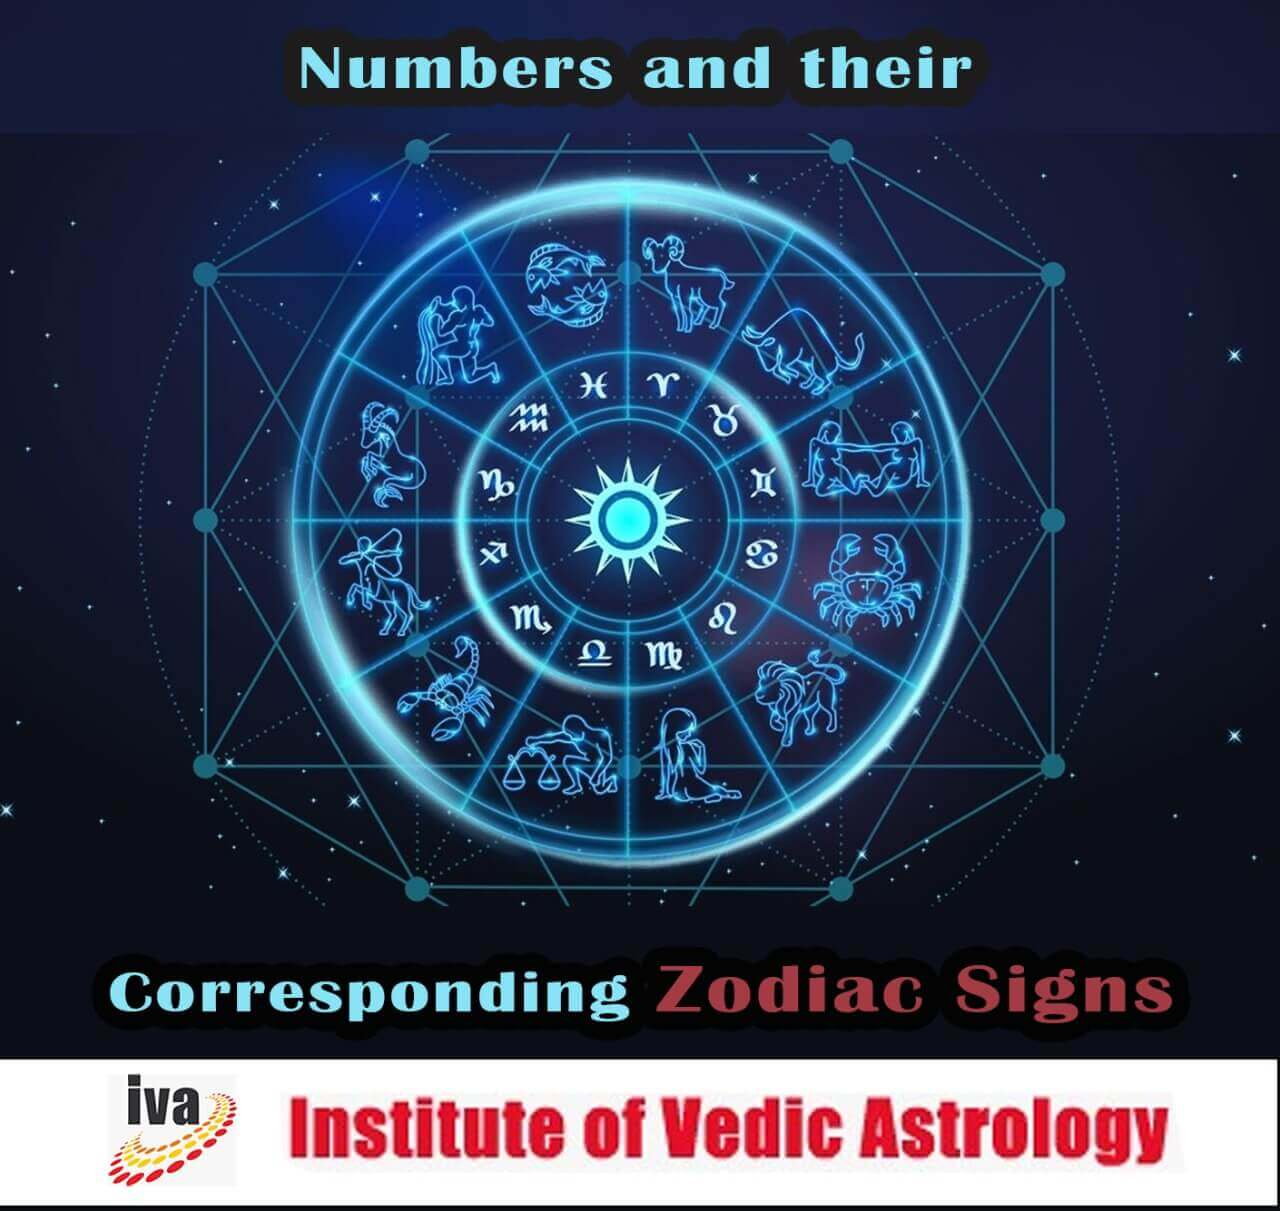 Numbers and their corresponding Zodiac Signs